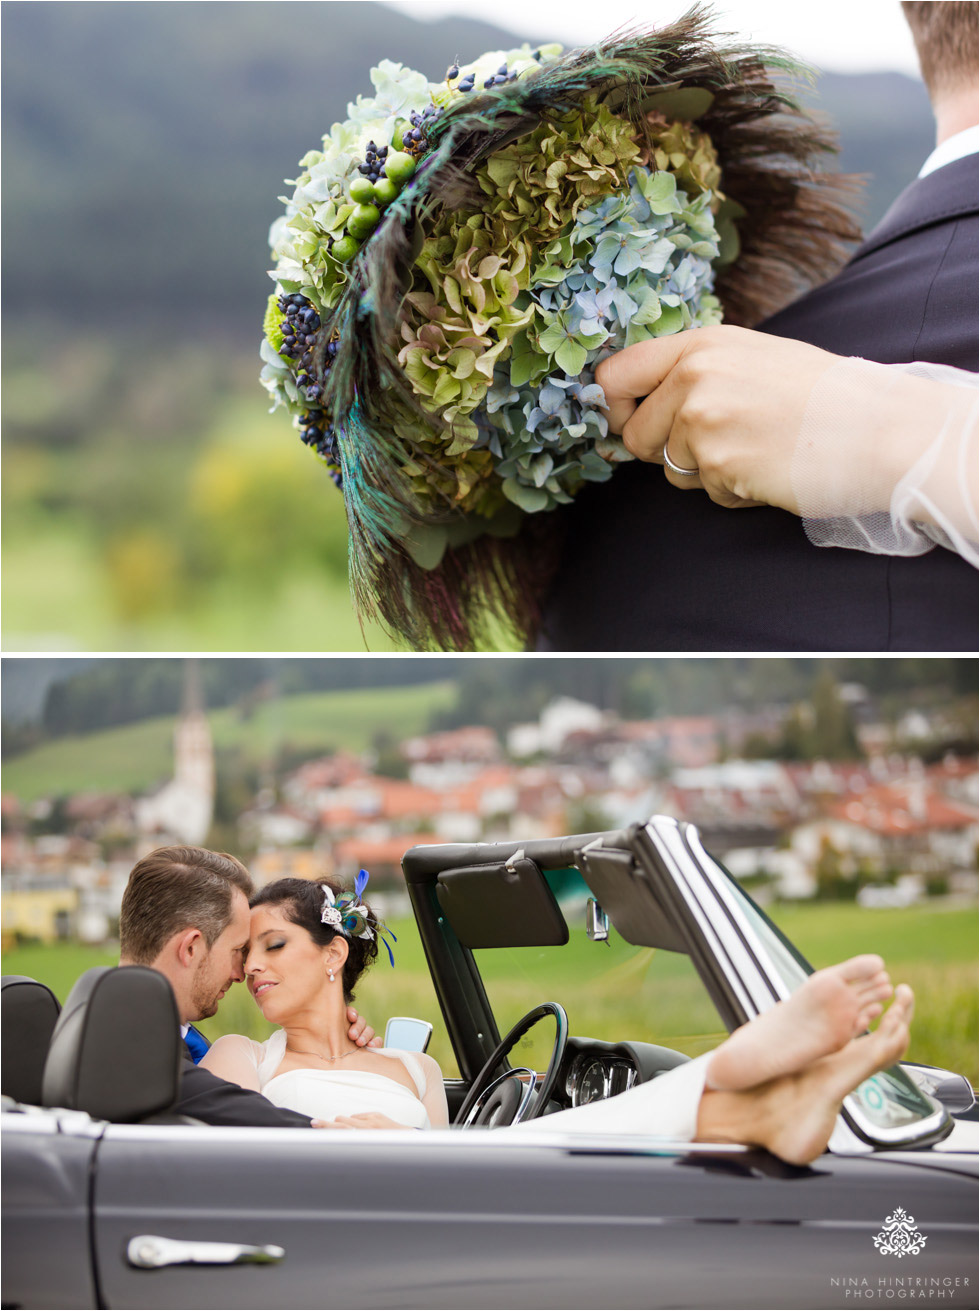 Peacock themed wedding | Maria & Toni | Congresspark Igls, Tyrol - Blog of Nina Hintringer Photography - Wedding Photography, Wedding Reportage and Destination Weddings